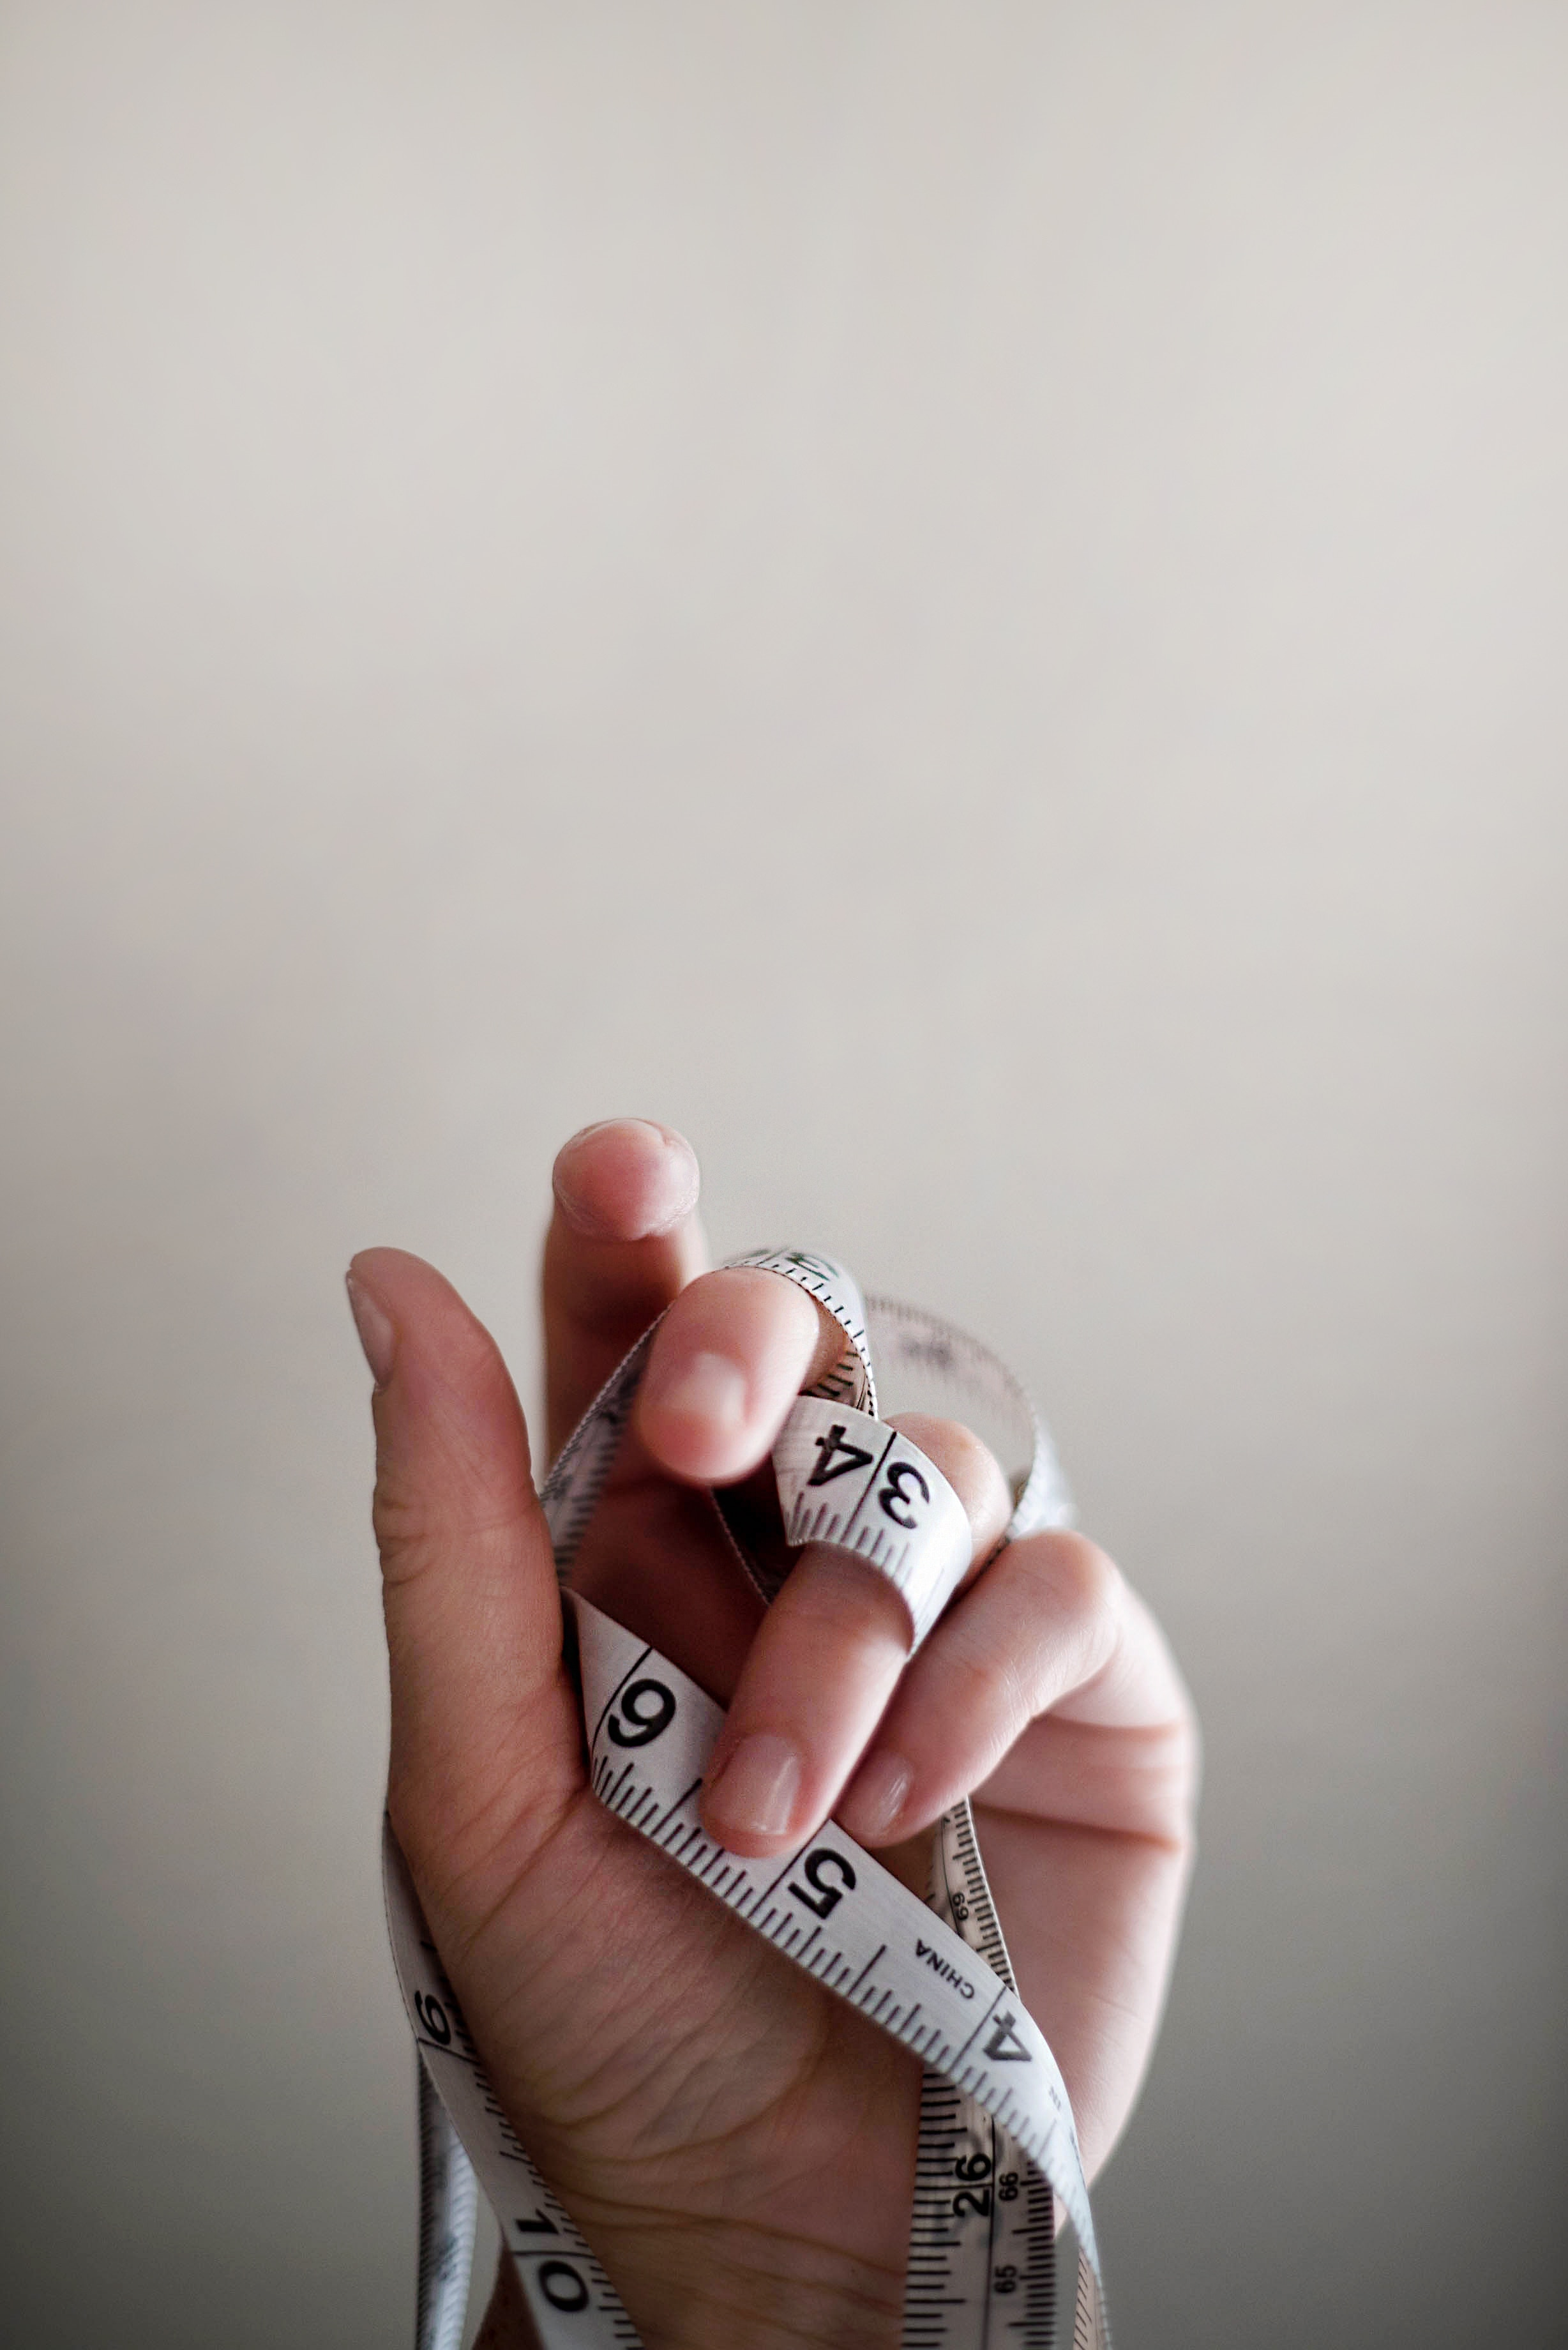 a hand holding a tape measure